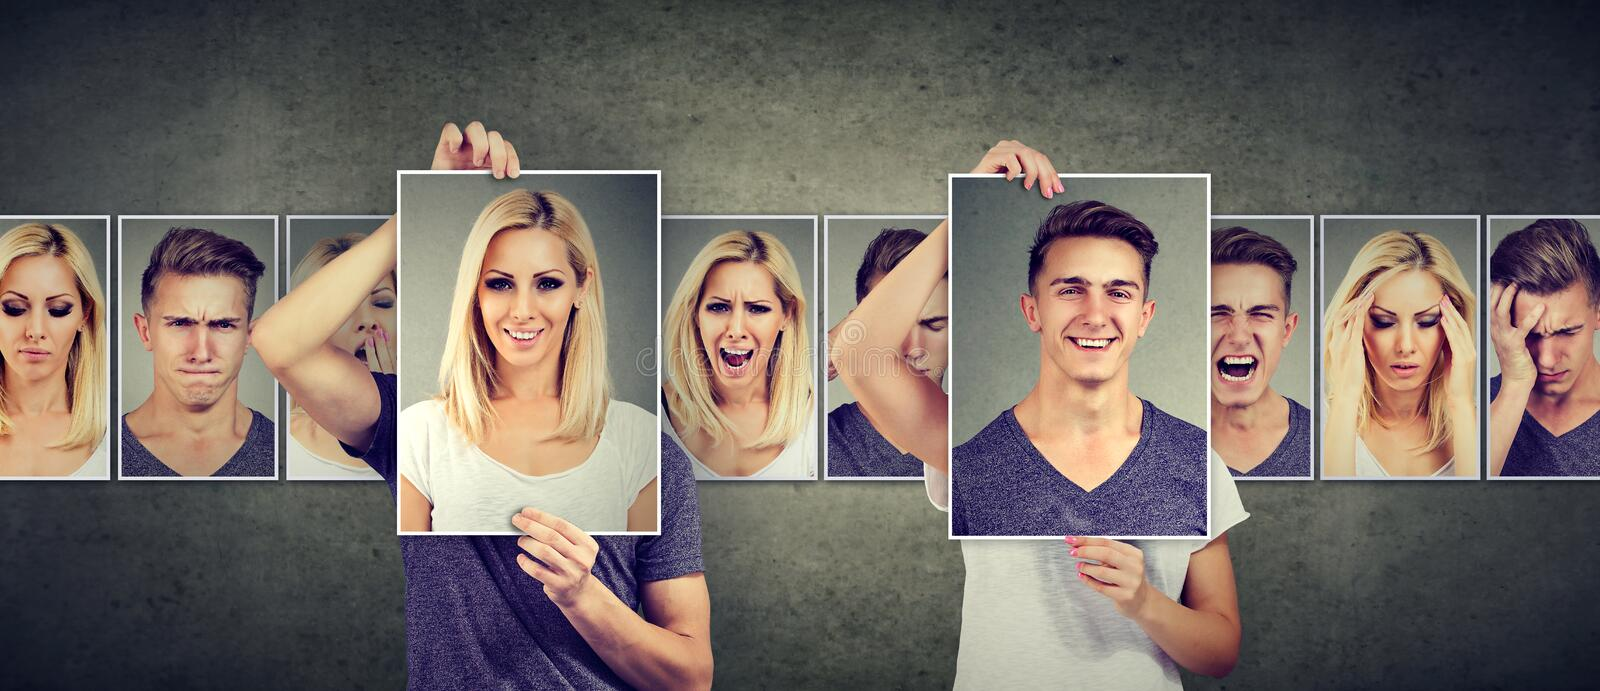 Balanced relationship. Masked woman and man expressing different emotions exchanging faces royalty free stock photos